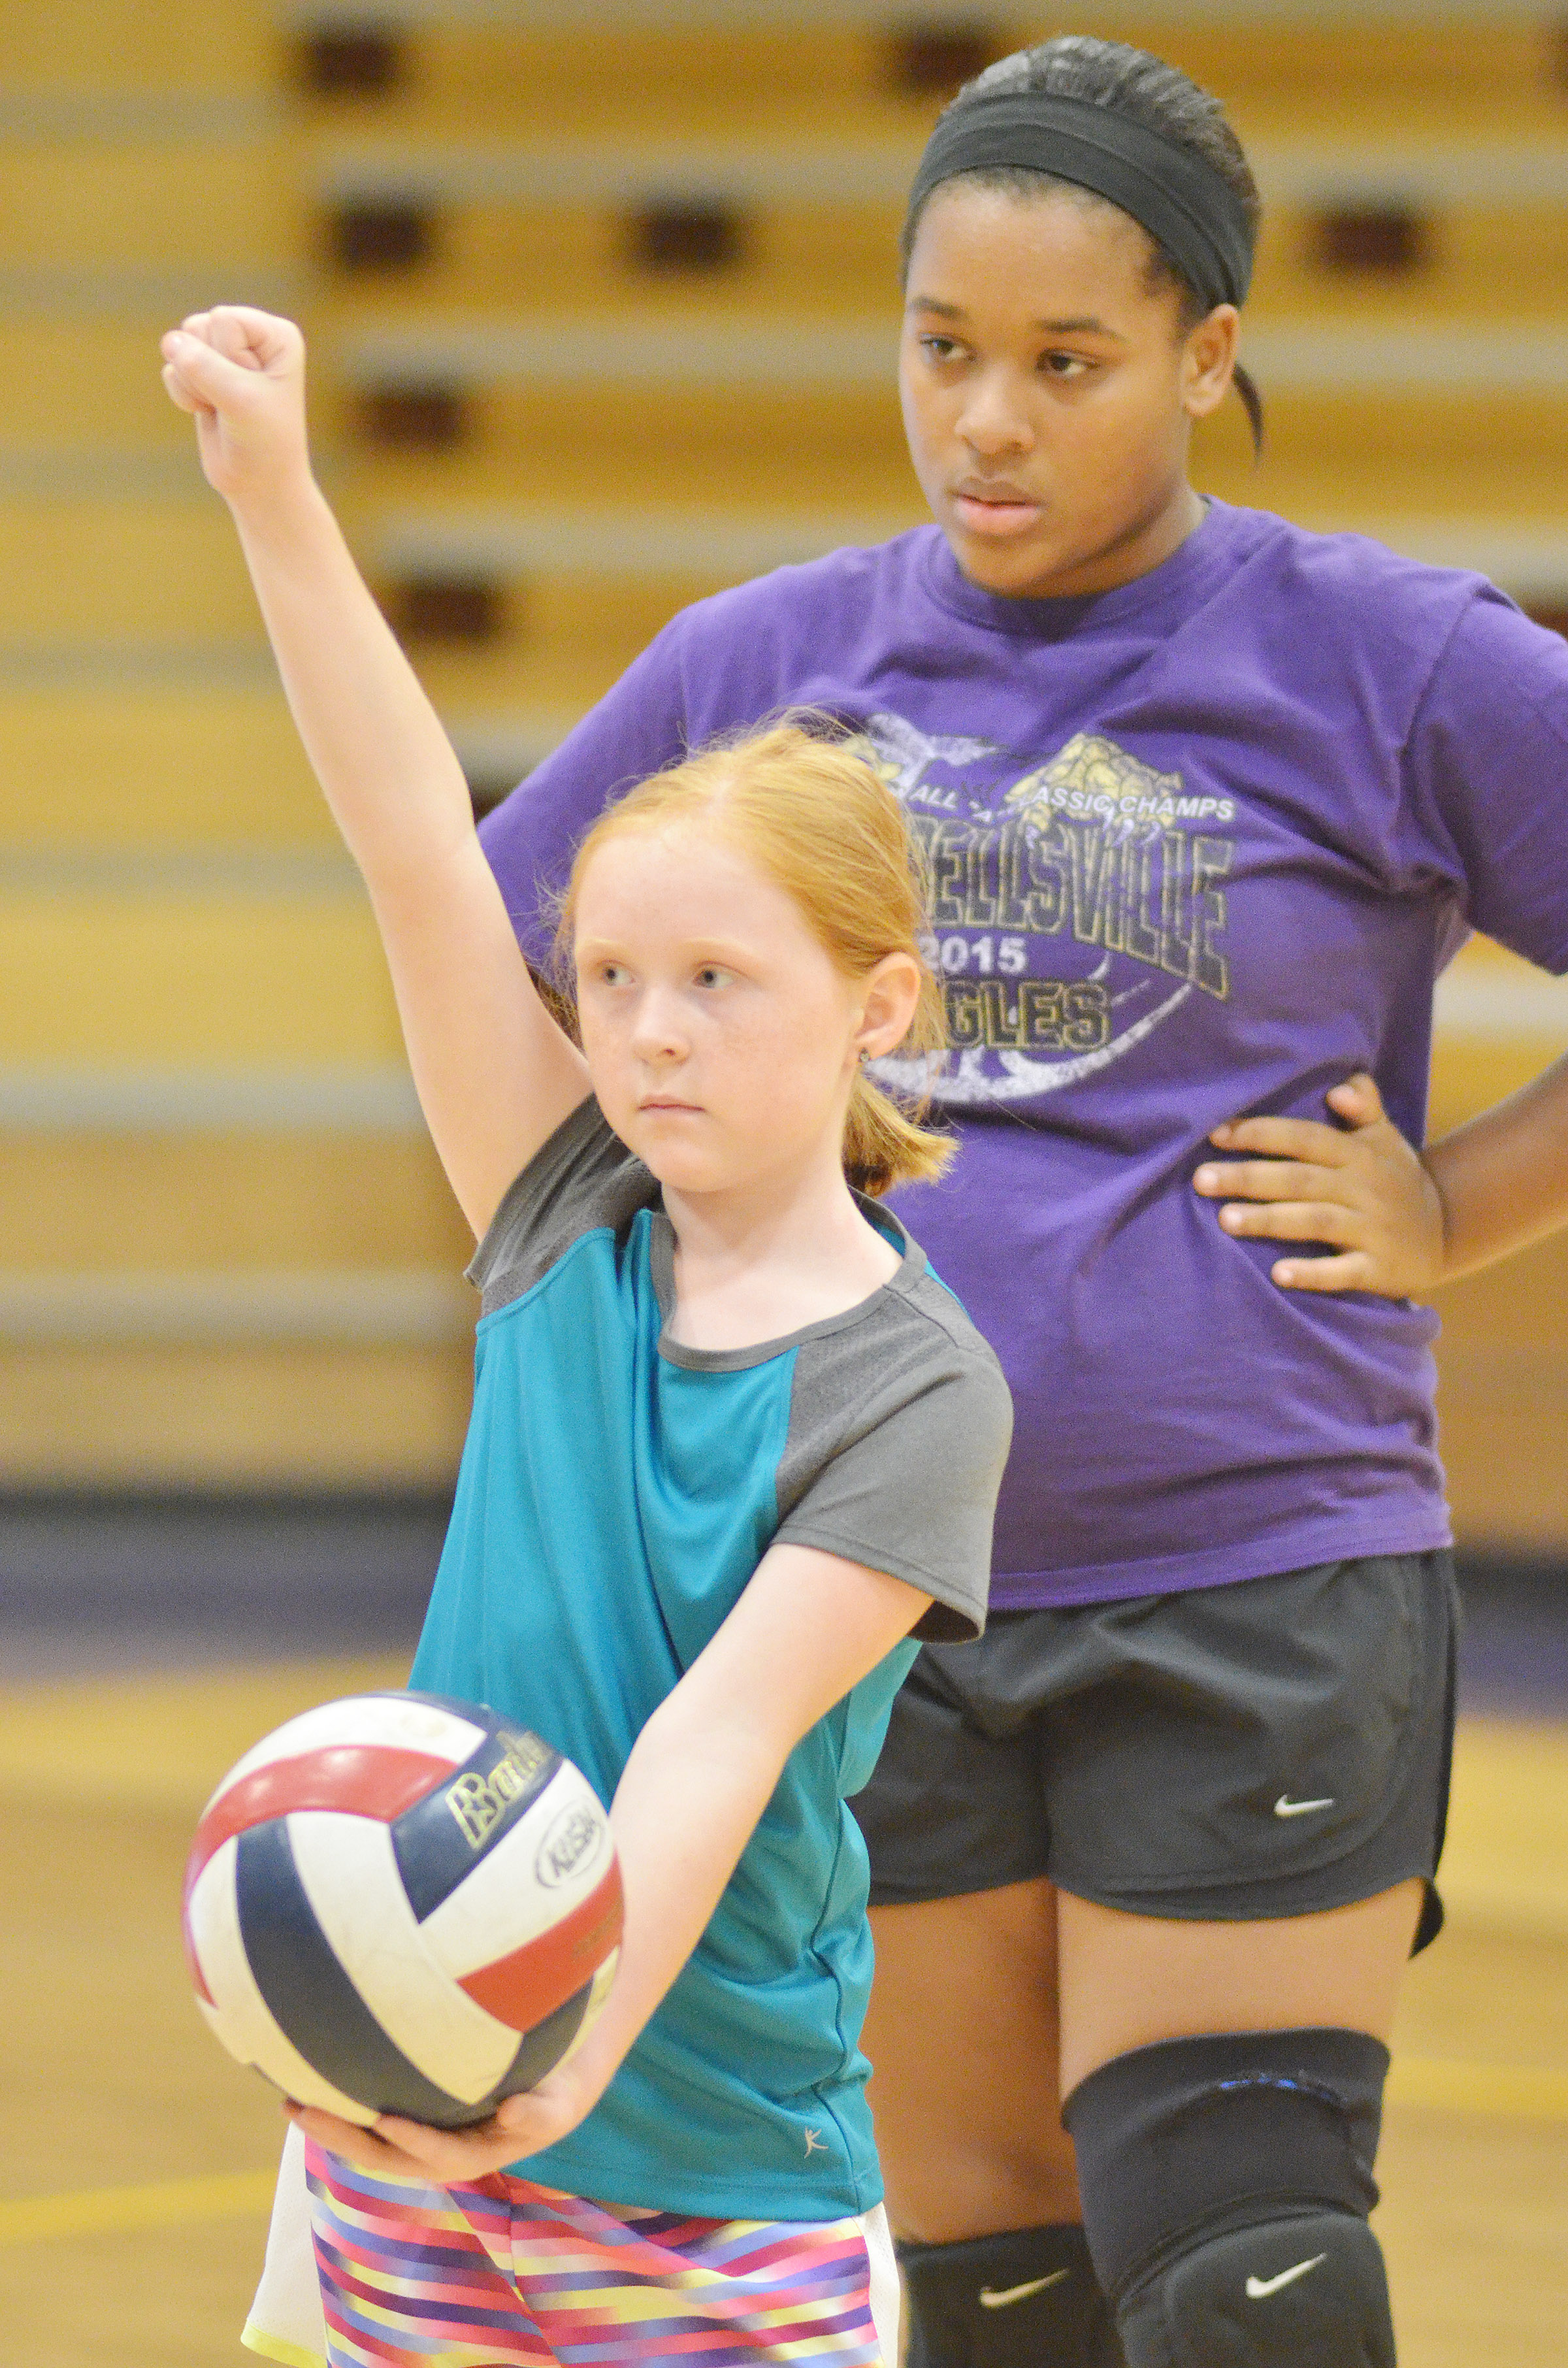 CHS senior Kayla Young watches as CES fourth-grader Nora Harris serves.